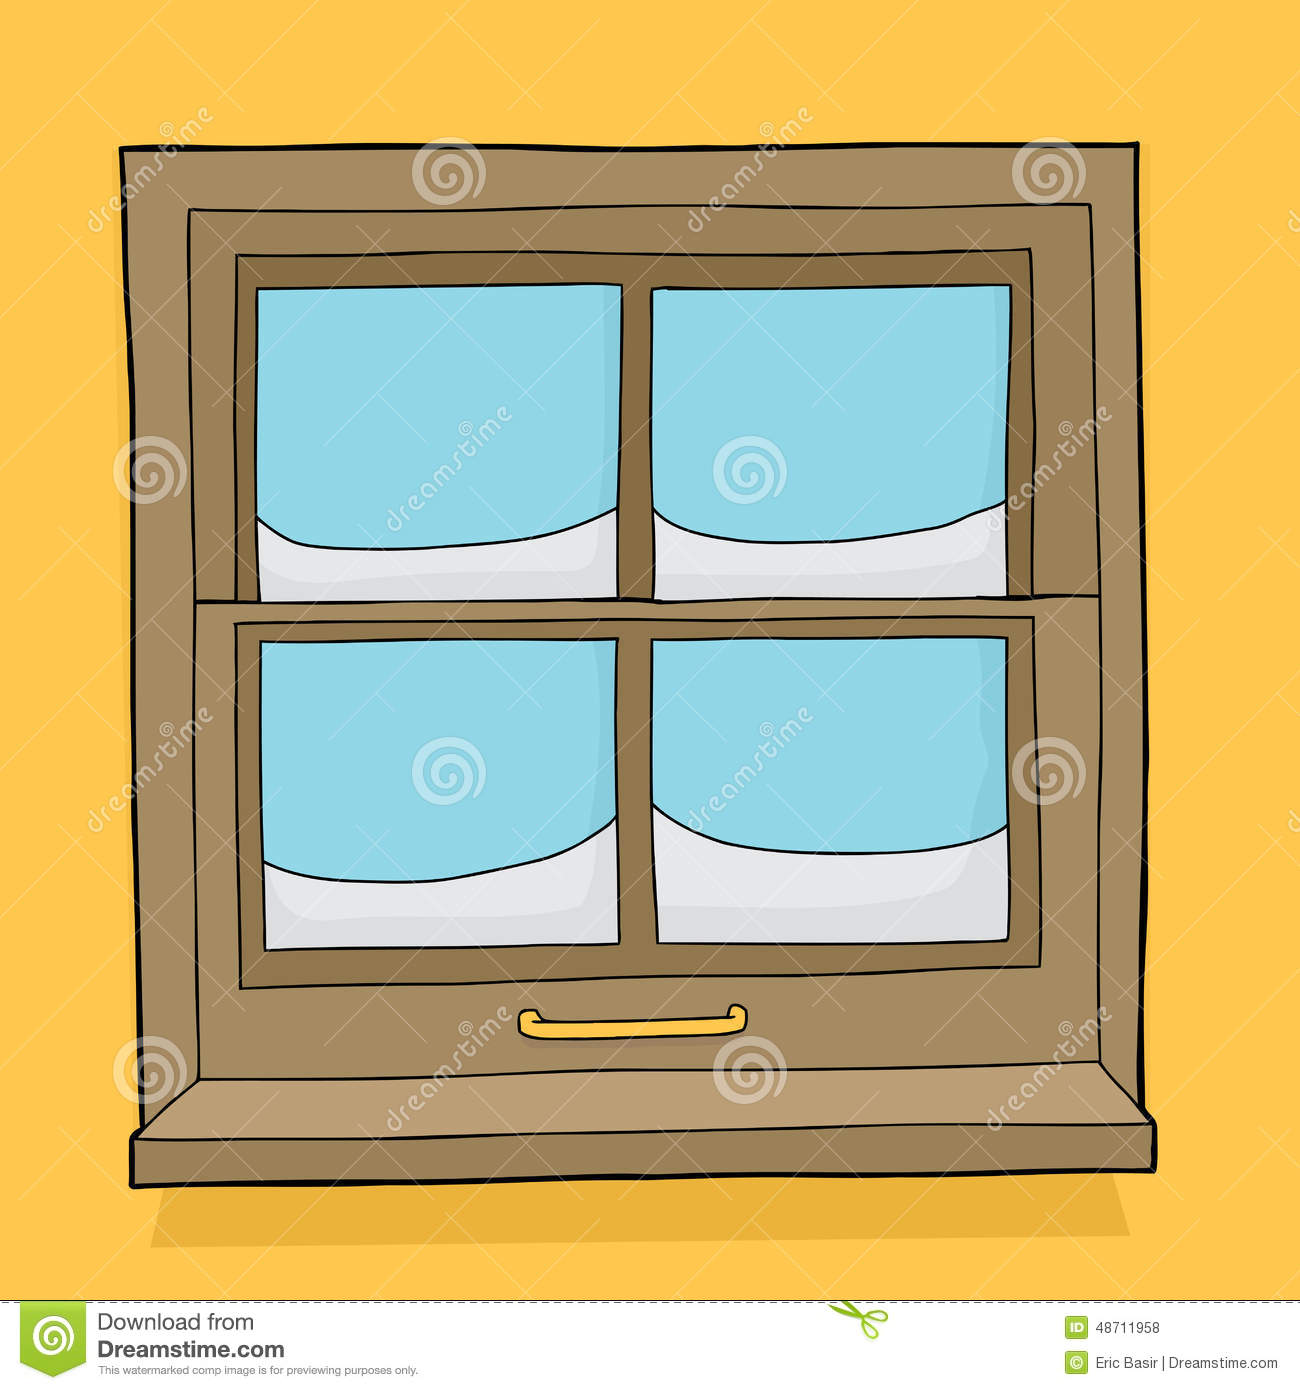 Snow Outside Window Stock Illustrations – 397 Snow Outside Window ... for Outside Window Clipart  76uhy